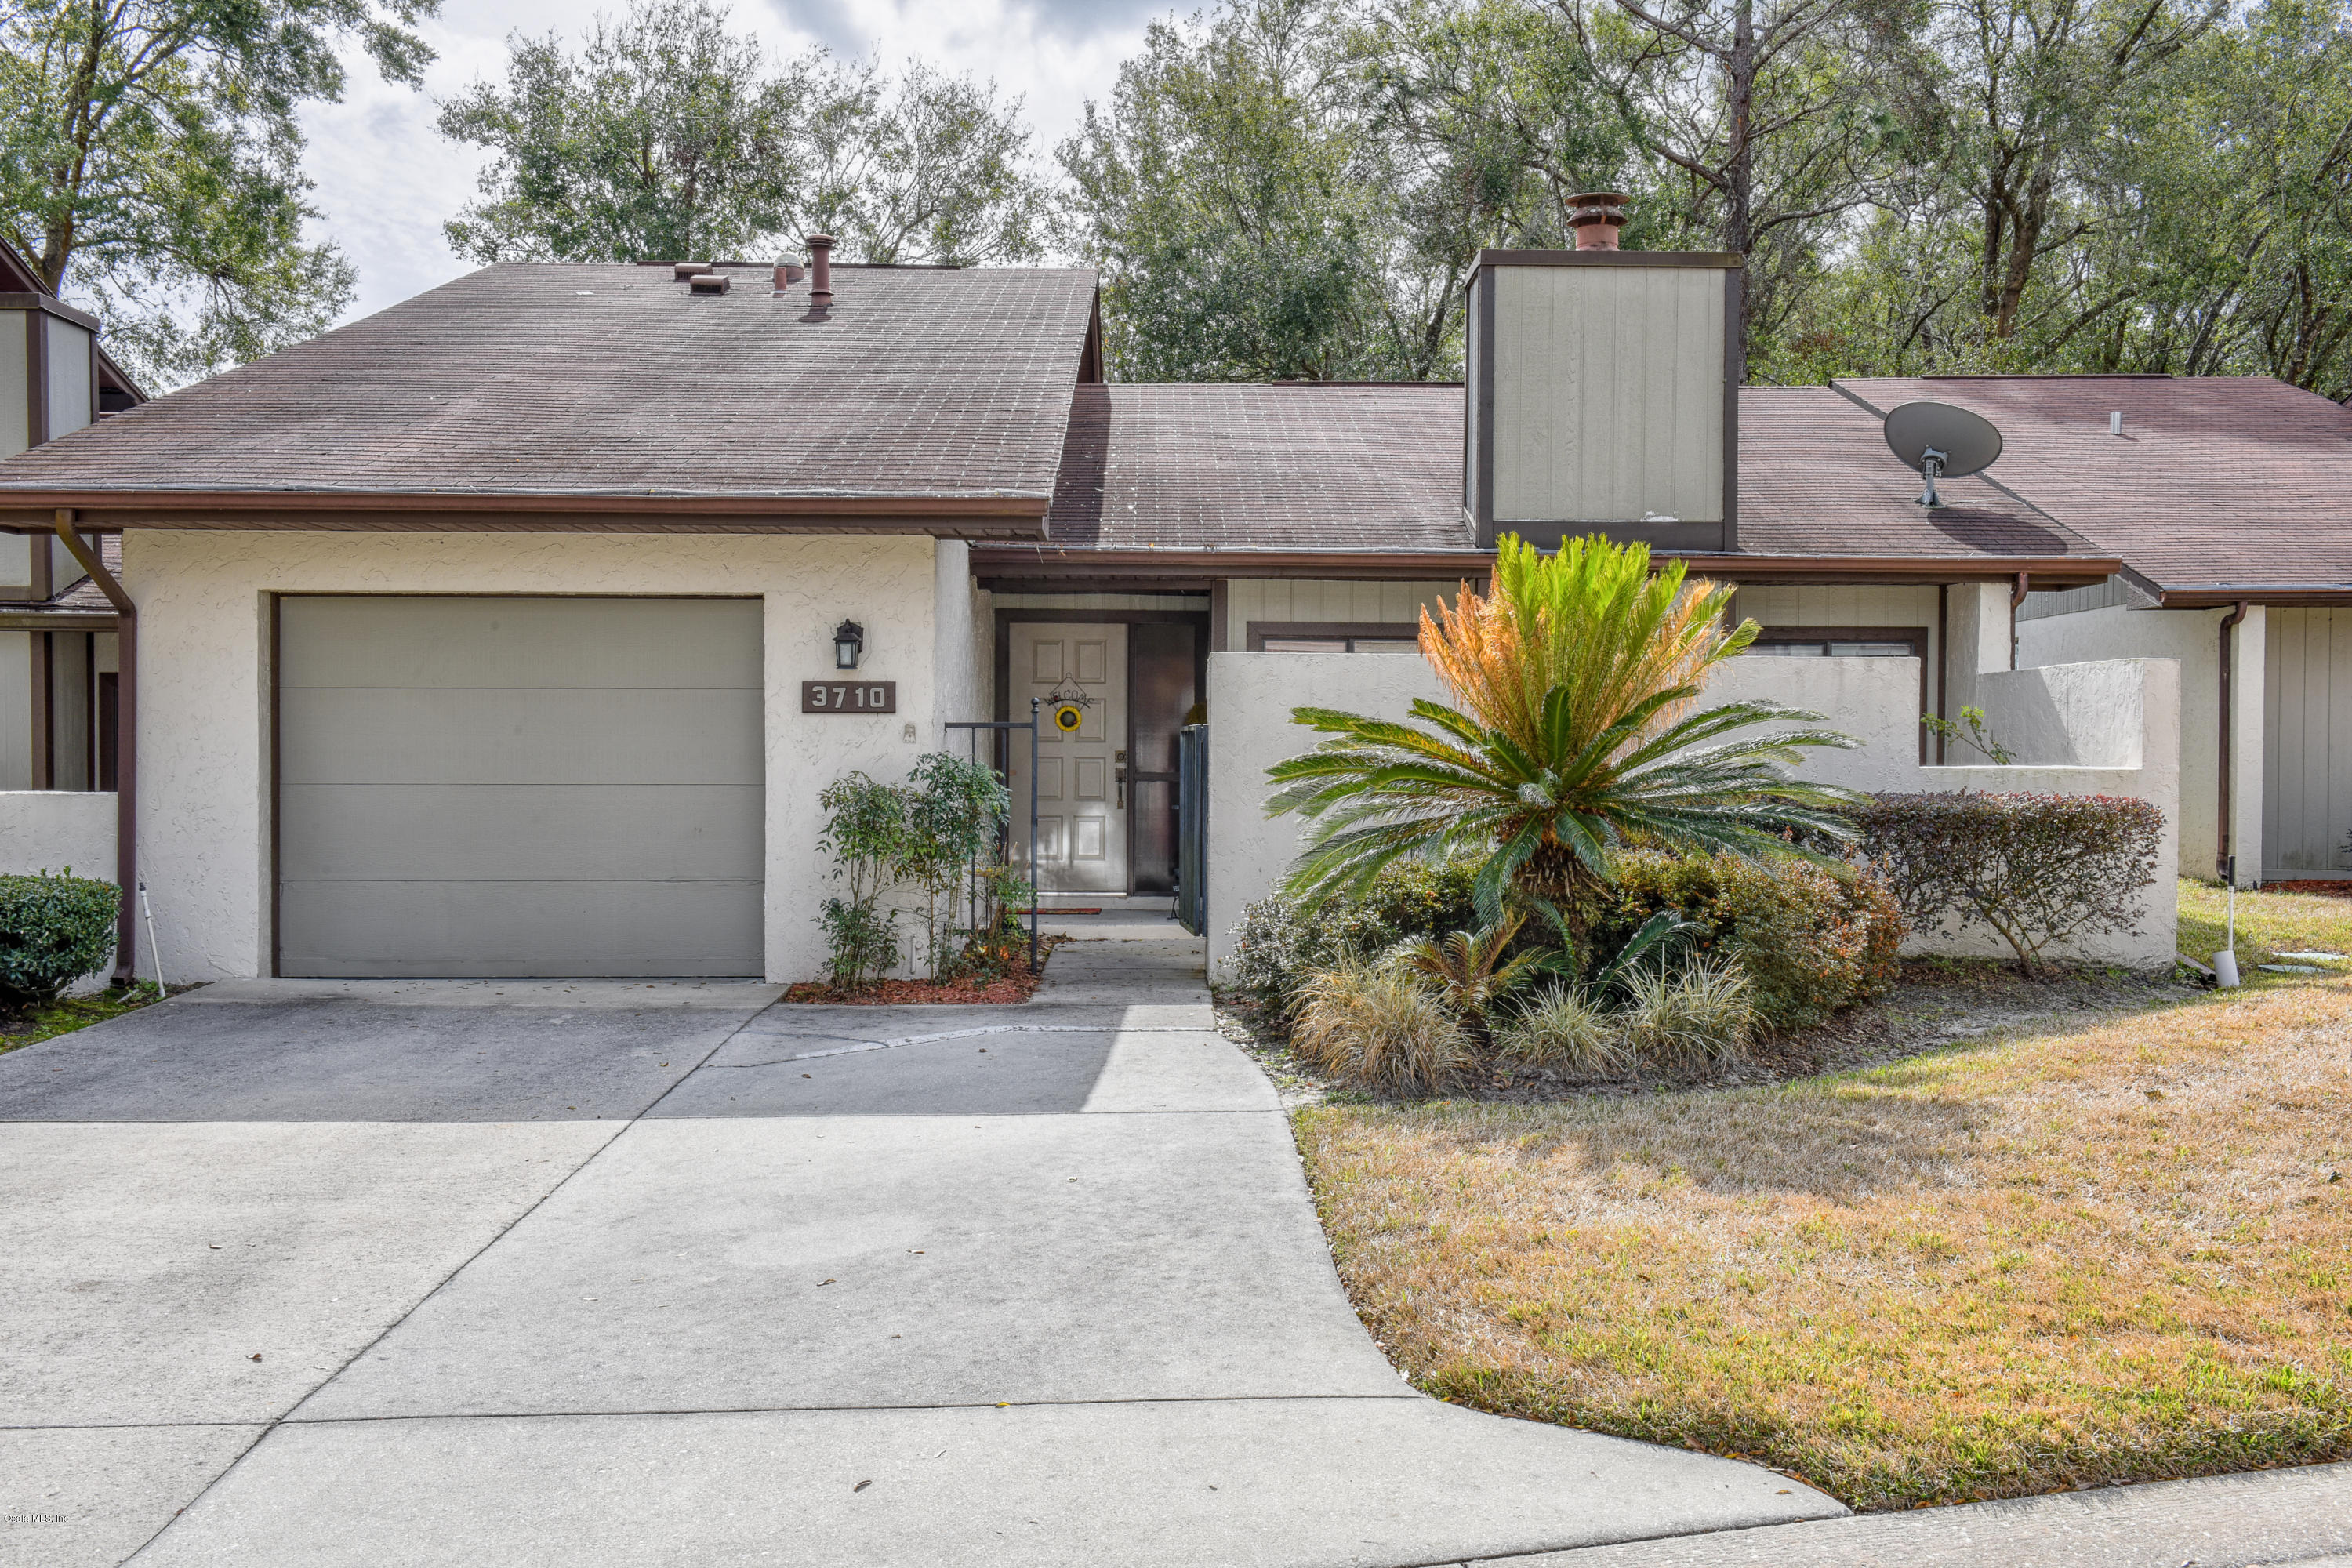 3710 NE 16TH PLACE, OCALA, FL 34470